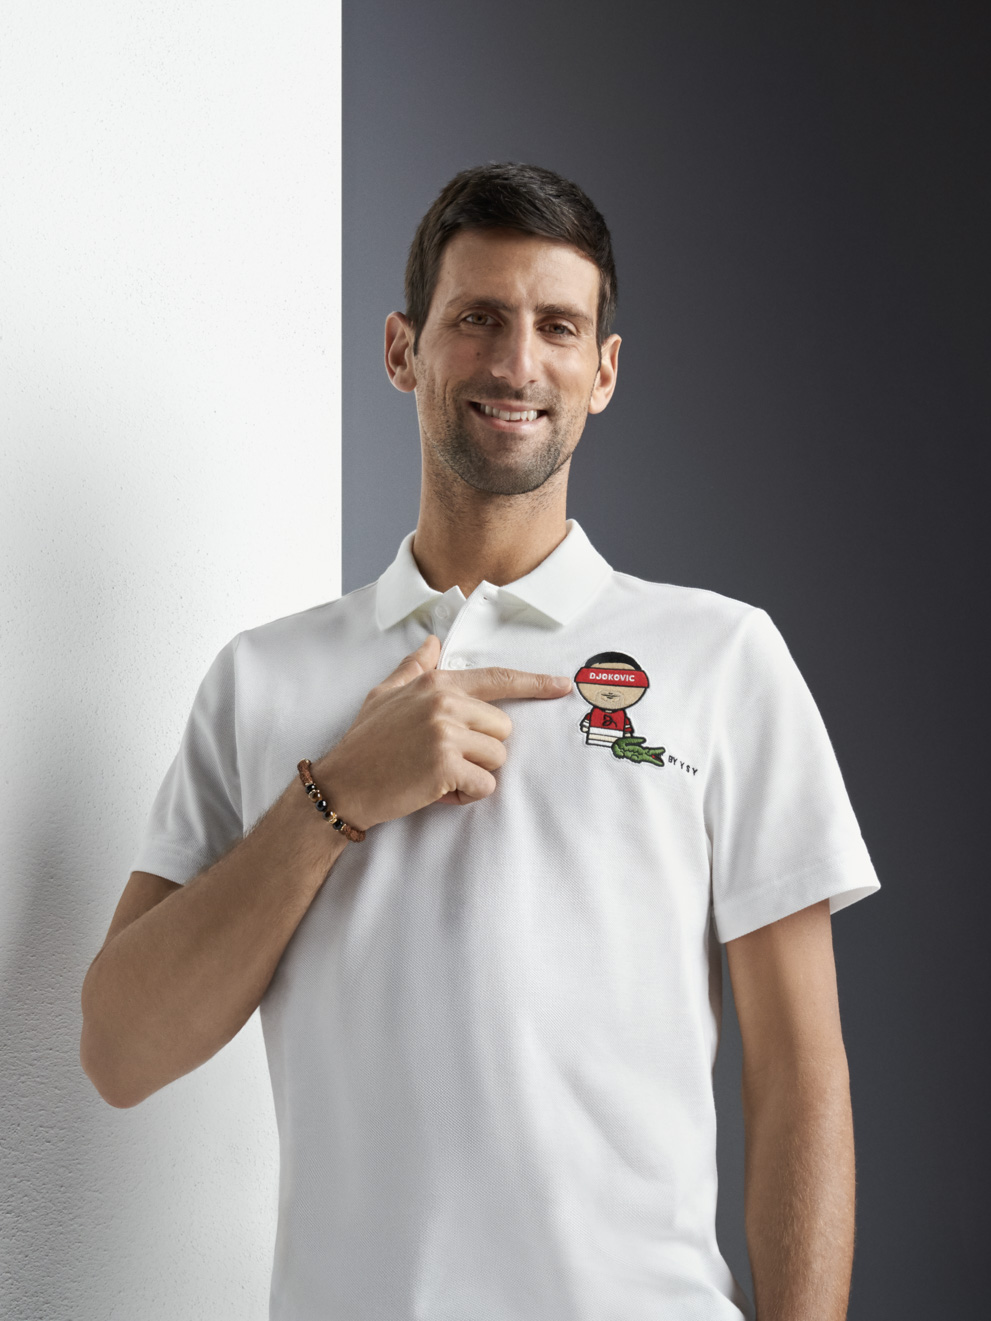 Lacoste Launches Capsule Collection With Artist Ysy Inspired By Djokovic Respect